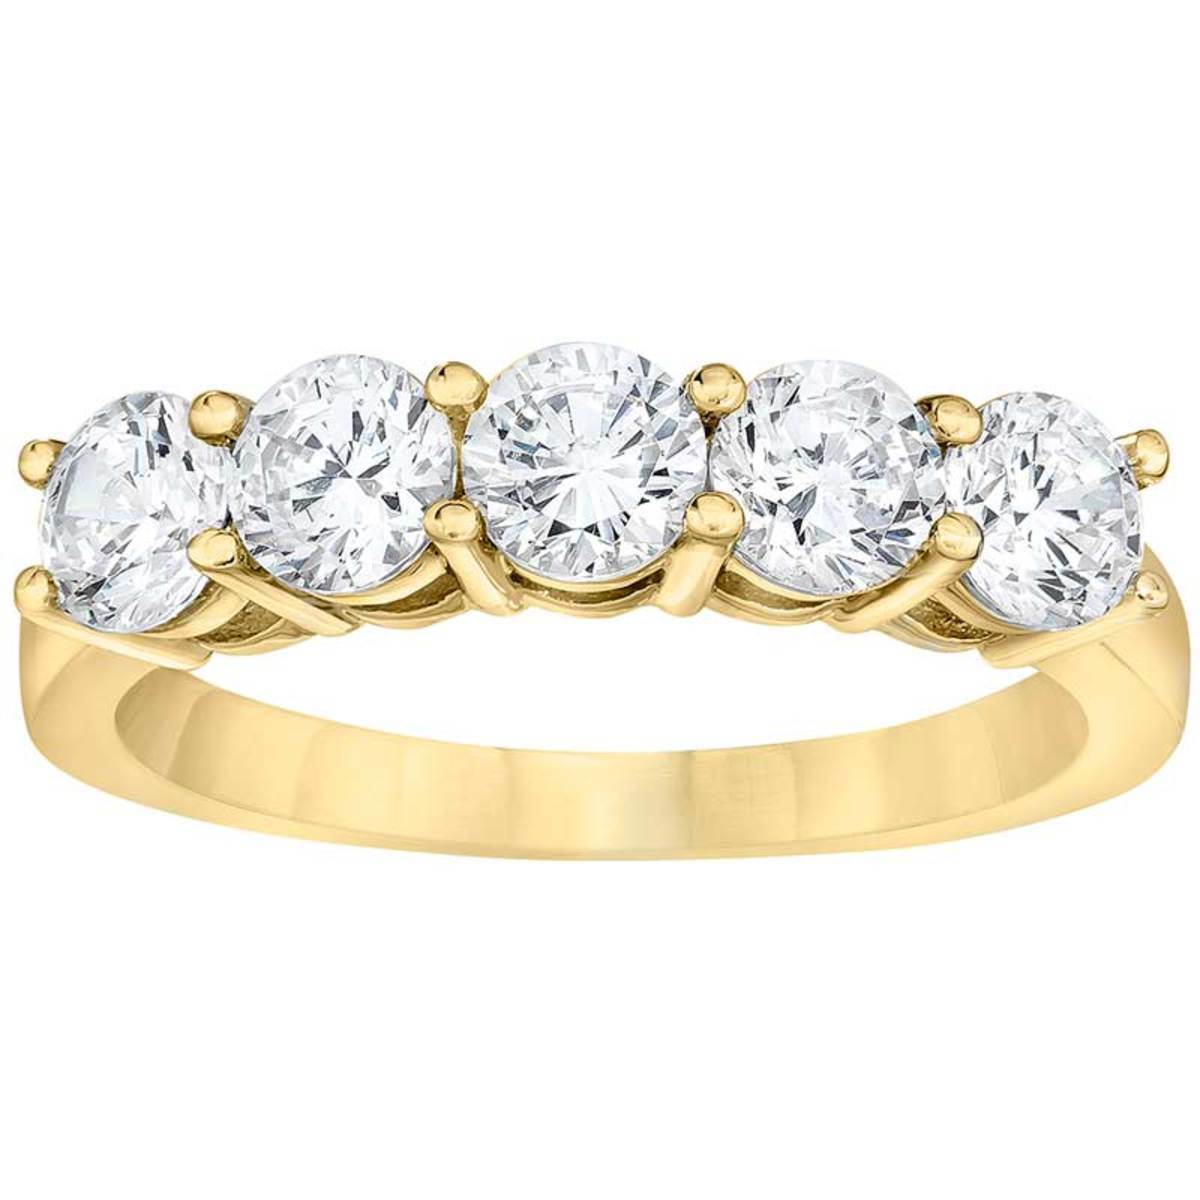 platinum platnum wedding pt band bands products in india setting women prong diamond for jl rings